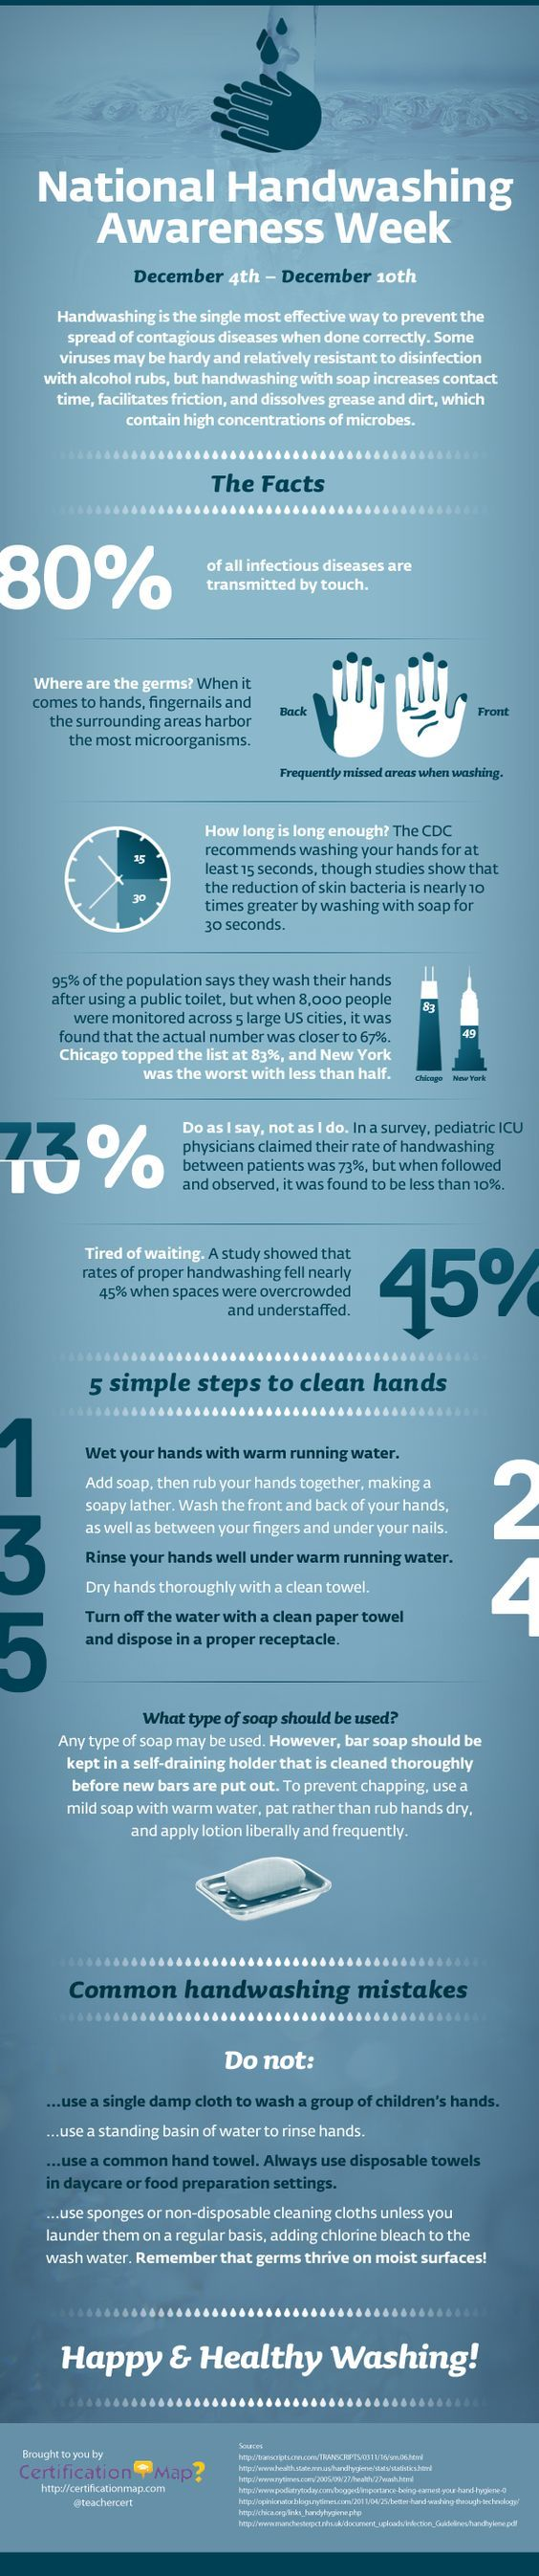 Hand washing can be one of the most effective ways to prevent the spread of contagious disease when done correctly.  It is important that we teach stu